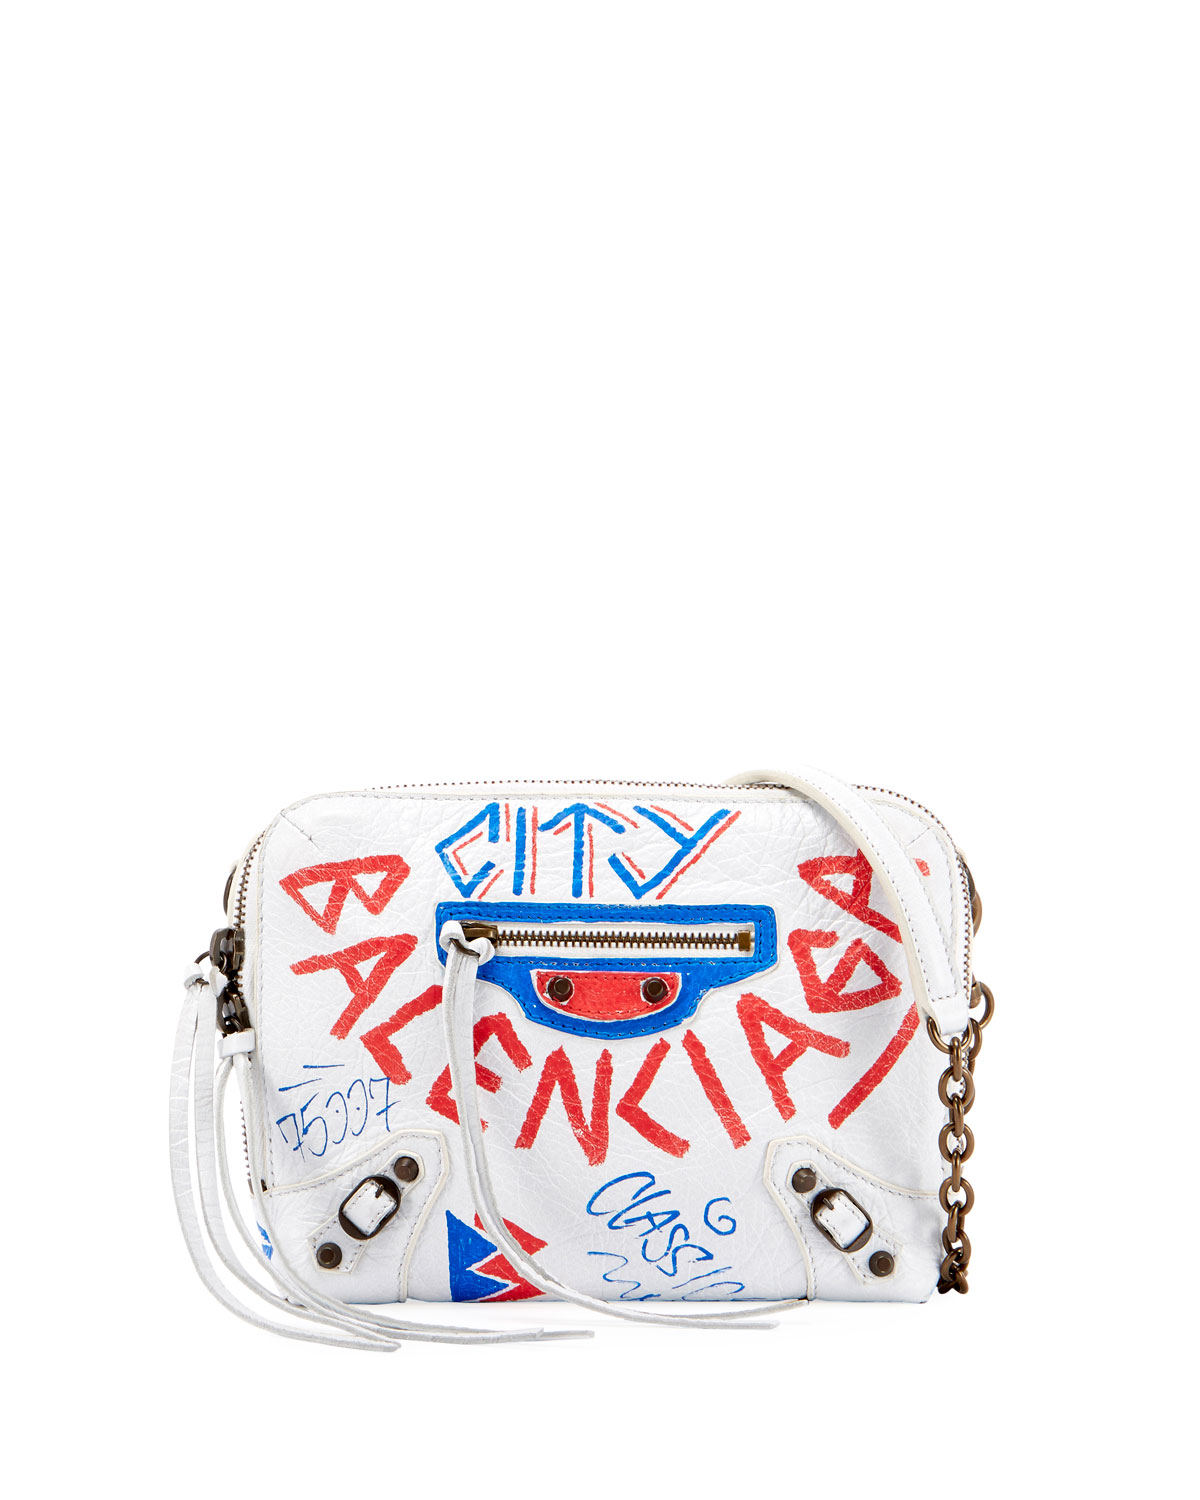 Graffiti Classic Reporter XS Crossbody Bag